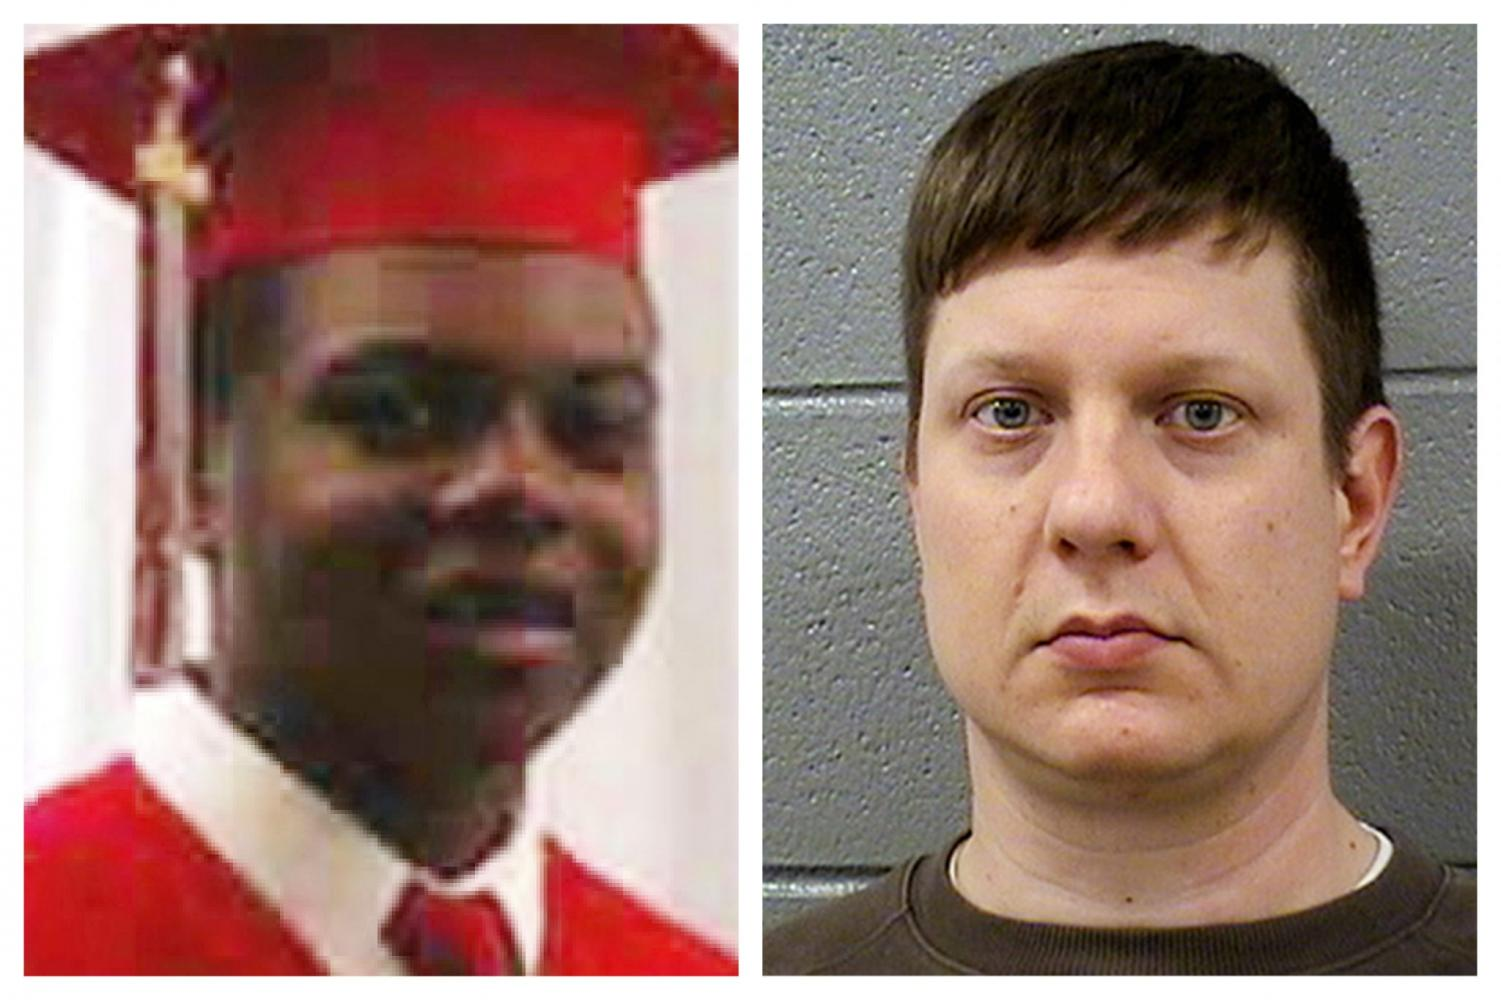 This combination of file photos shows Laquan McDonald and former Chicago Police Officer Jason Van Dyke. The Chicago Police Board on Thursday, July 18, 2019, fired four police officers for allegedly covering up Dyke's 2014 fatal shooting of teenager McDonald.